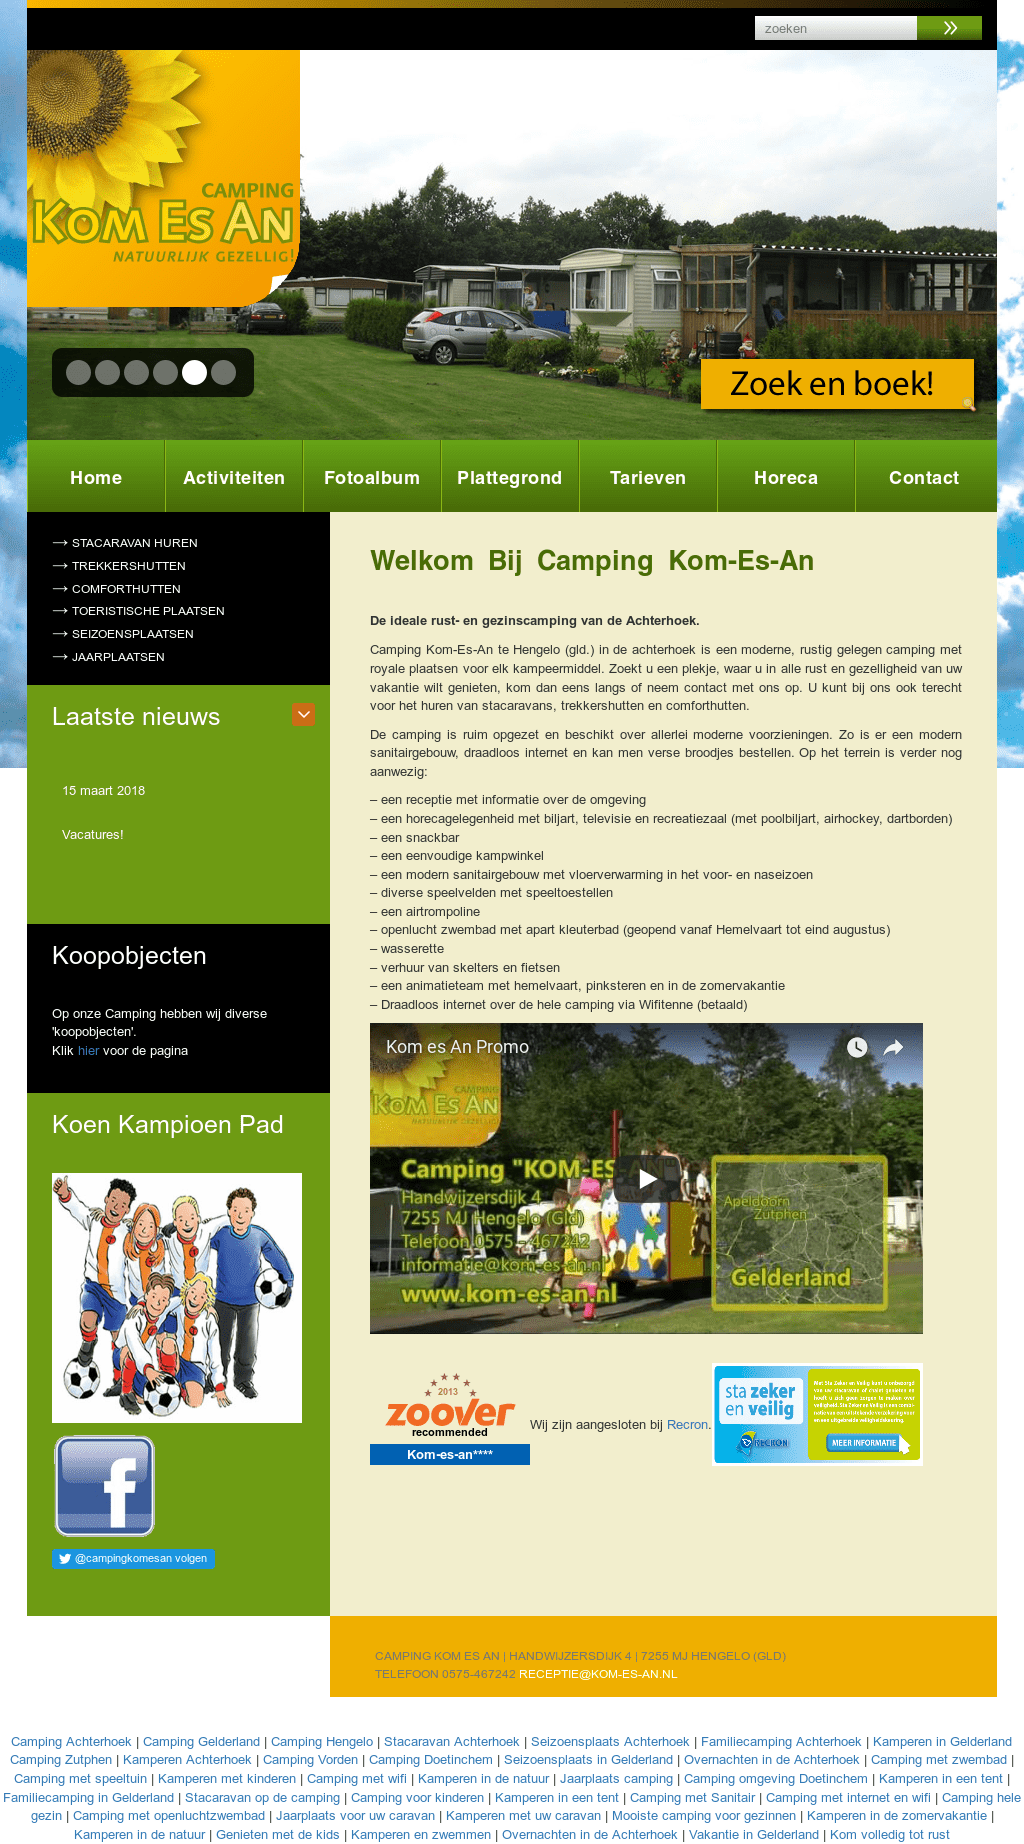 Camping Zwembad Apeldoorn Camping Kom Es An Competitors Revenue And Employees Owler